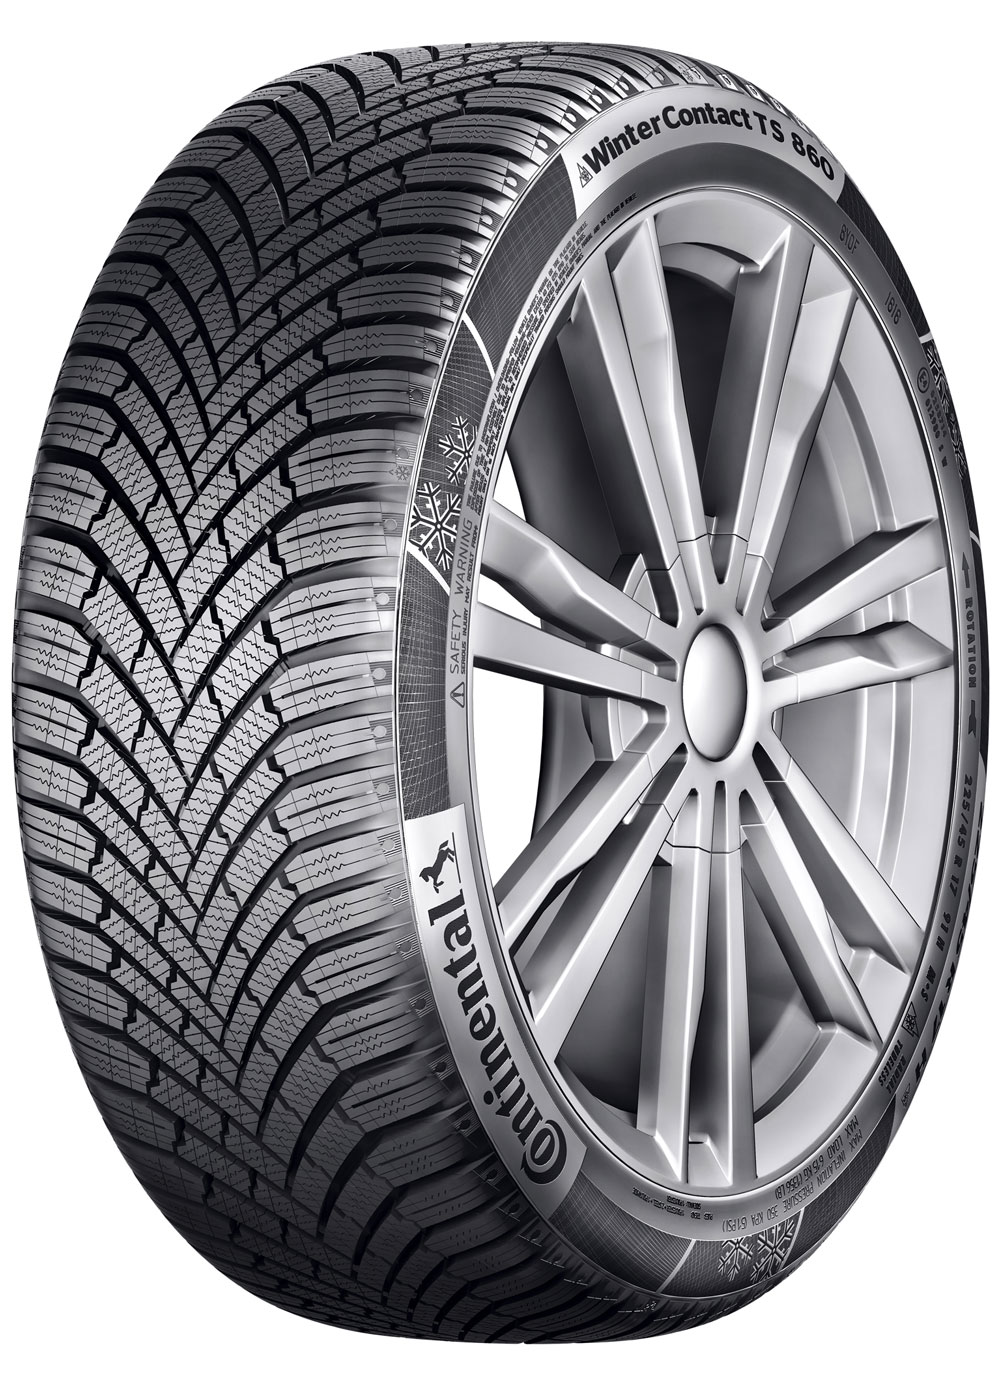 Gomme Nuove Continental 205/60 R15 91H TS 860 M+S (100%) pneumatici nuovi Invernale